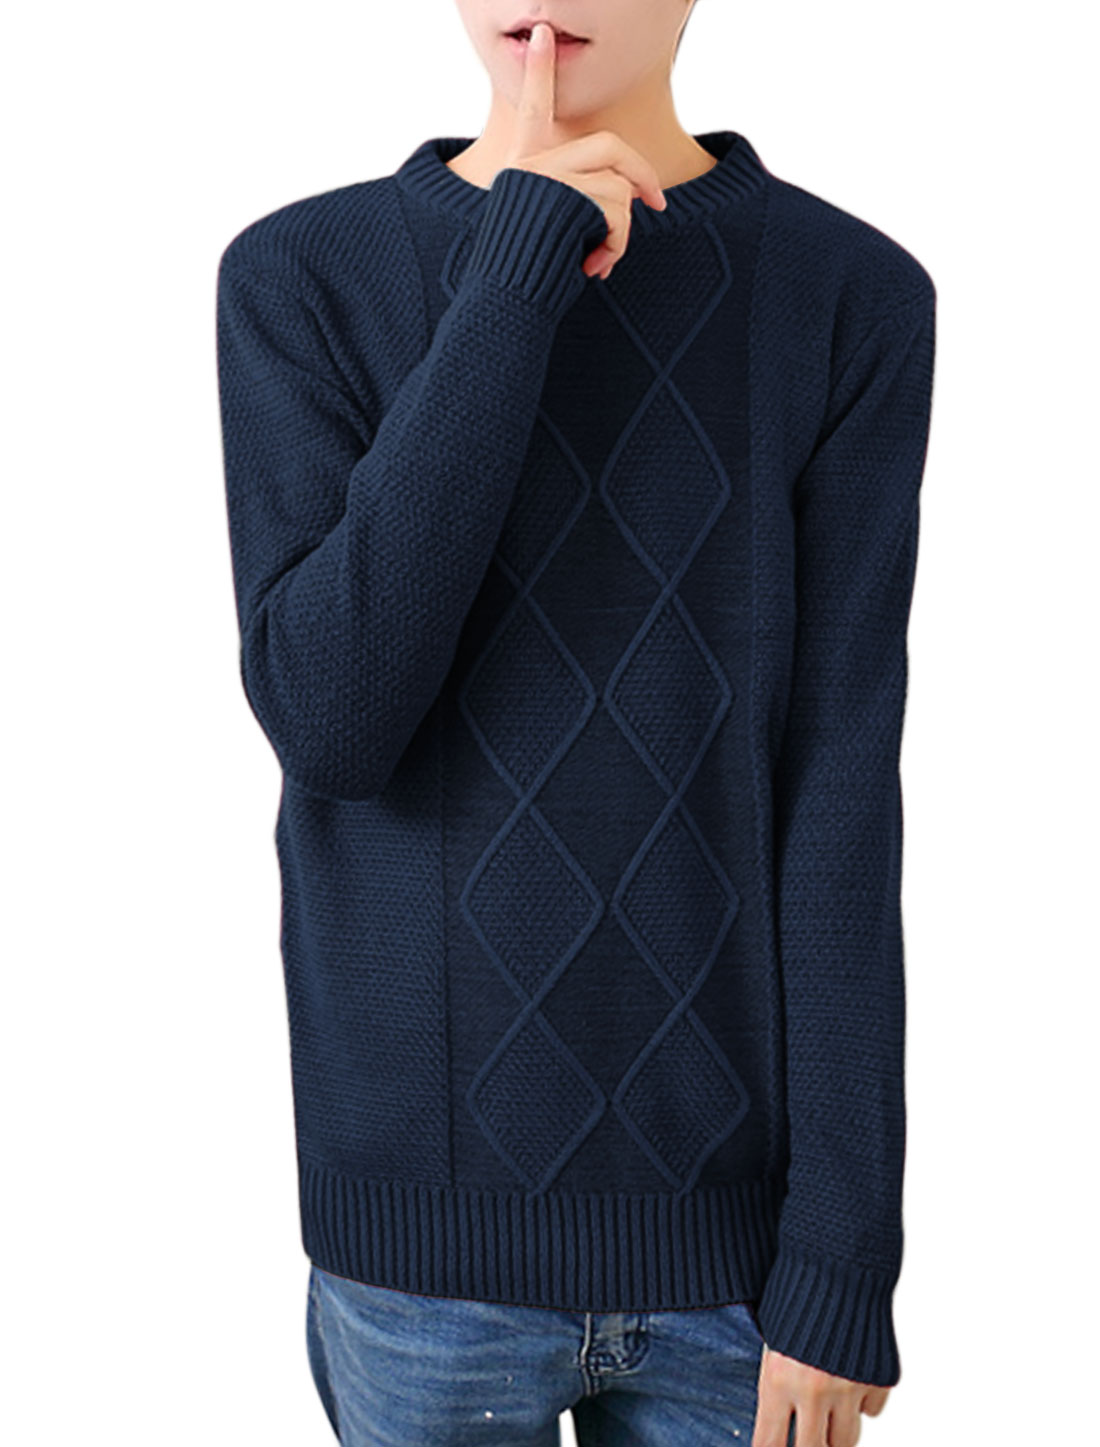 Men Crew Neck Long Sleeves Argyle Design Casual Sweater Navy Blue S